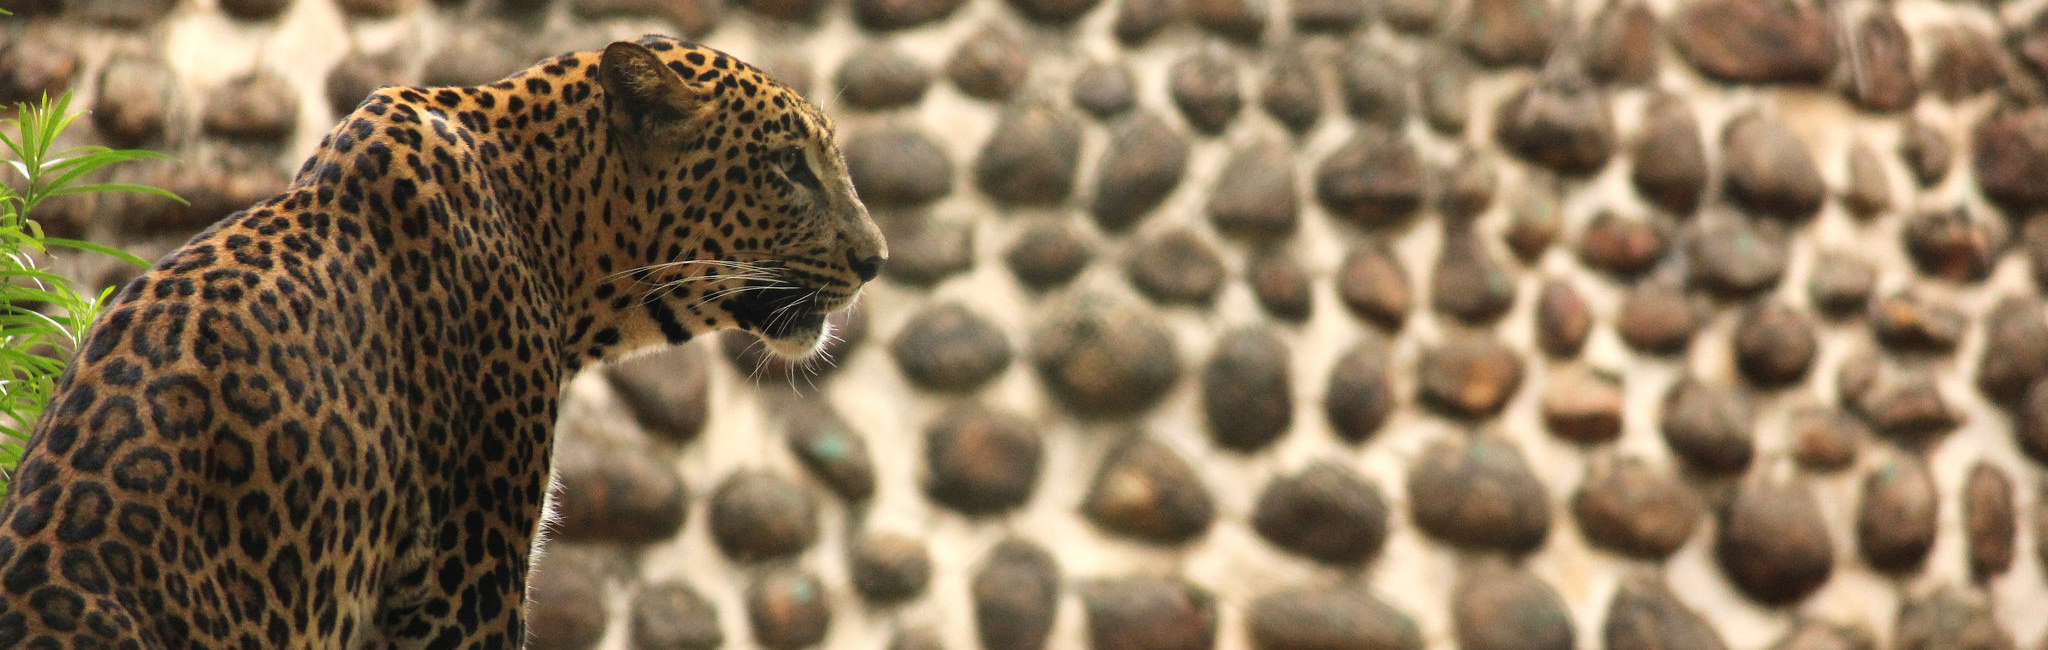 Delhi Tries To Catch Its Leopard Even As the Law and Best Practice Forbid